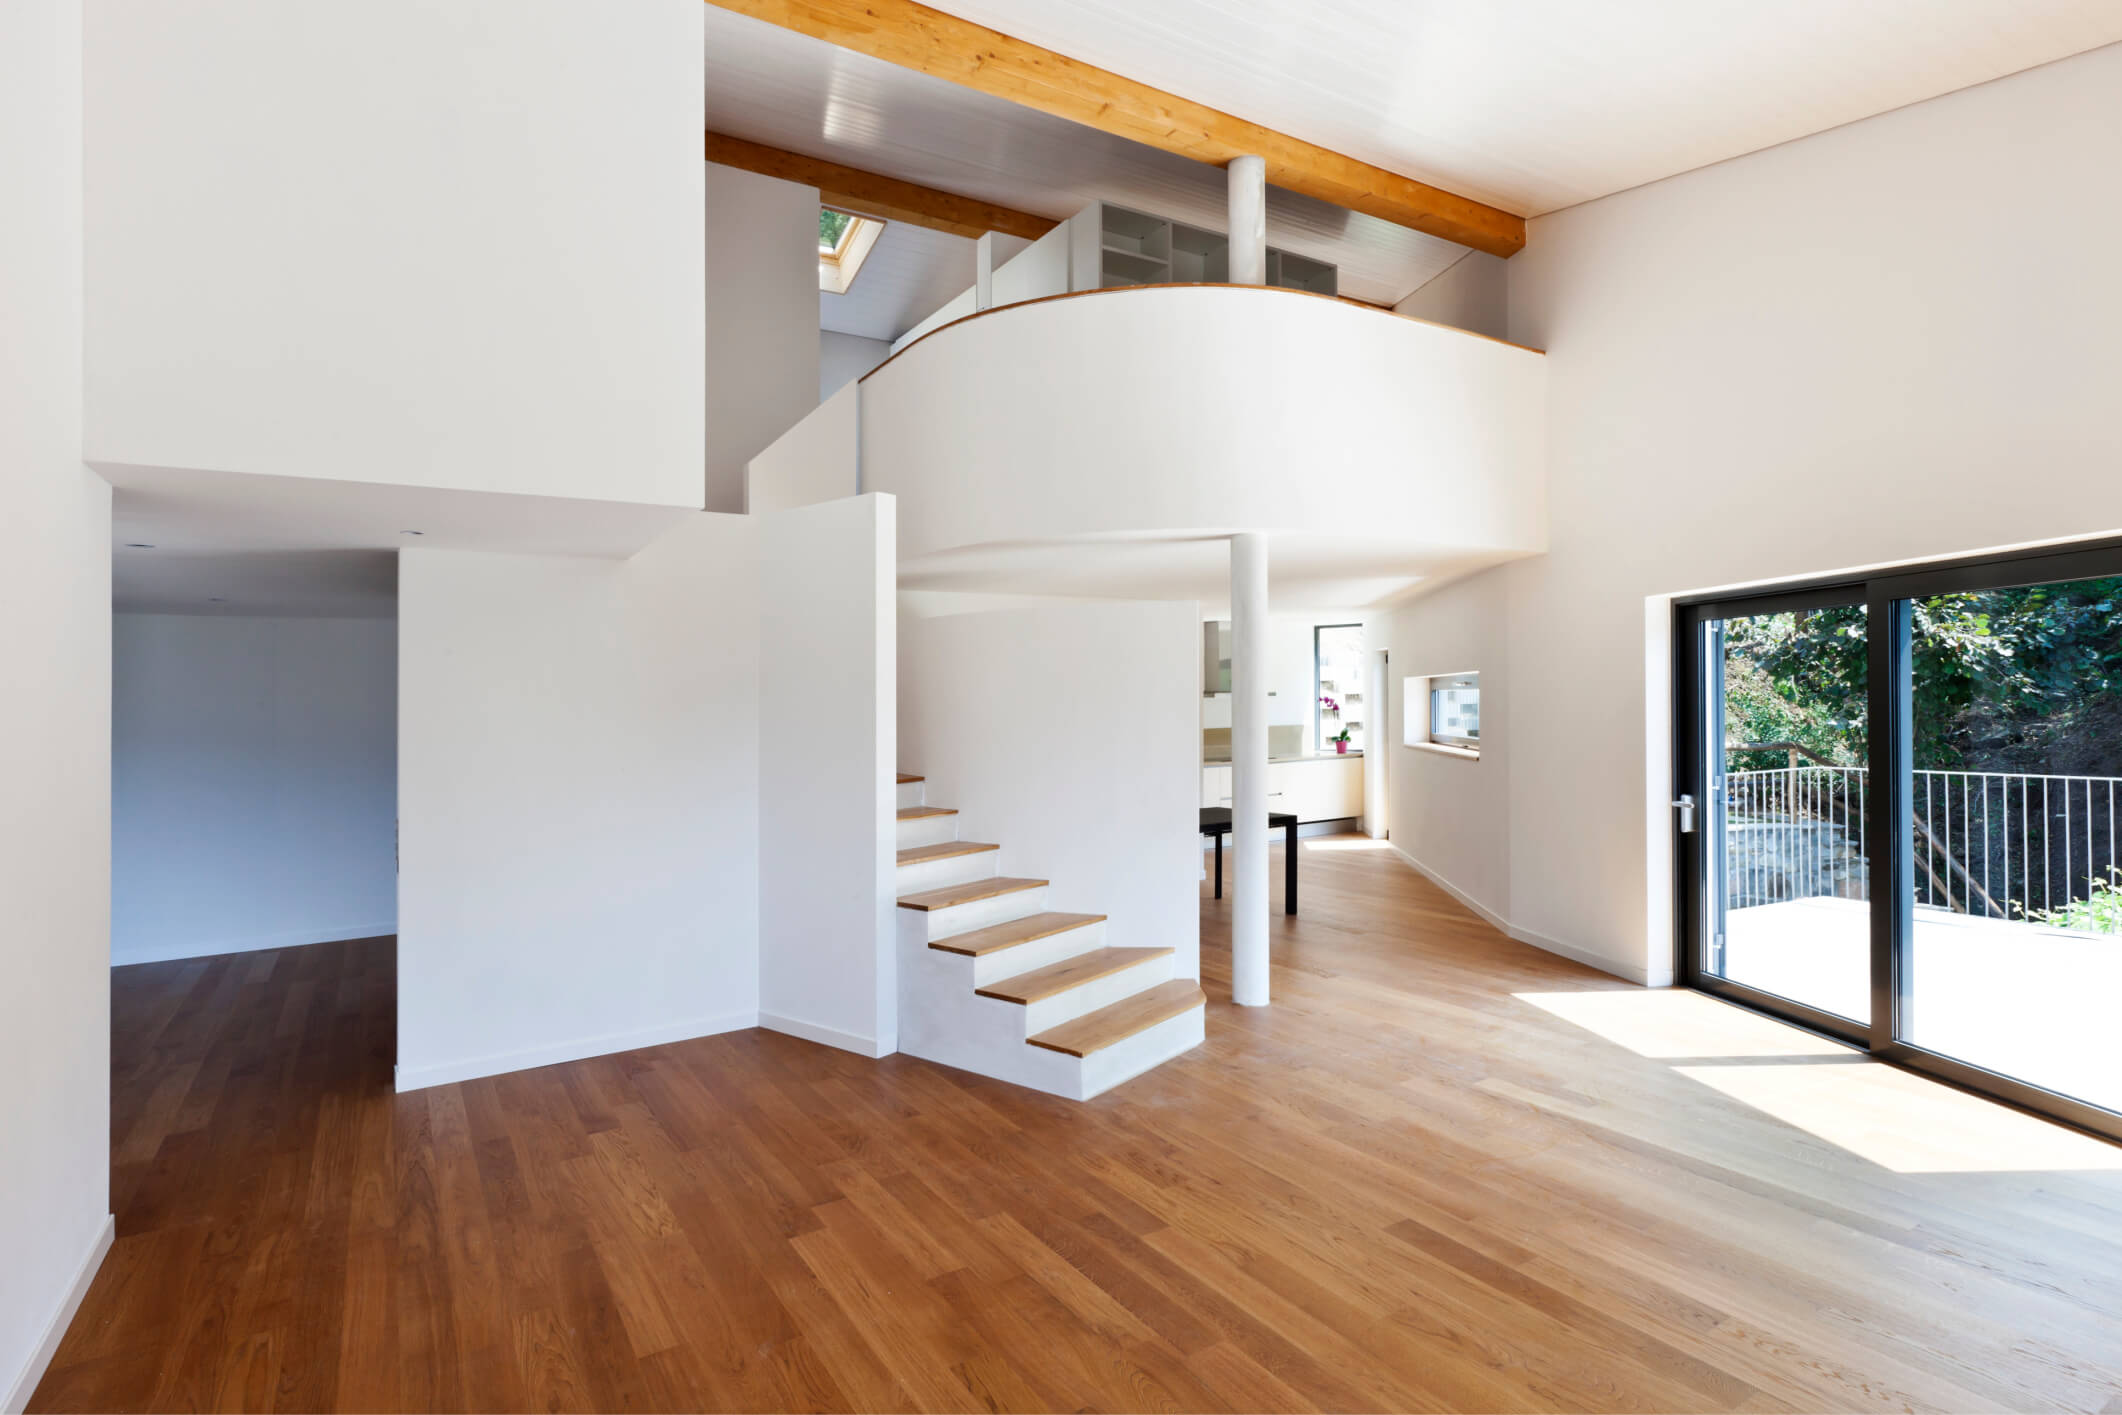 Superb Top 10 Advantages And Disadvantages Of Unfurnished Apartments For Rent